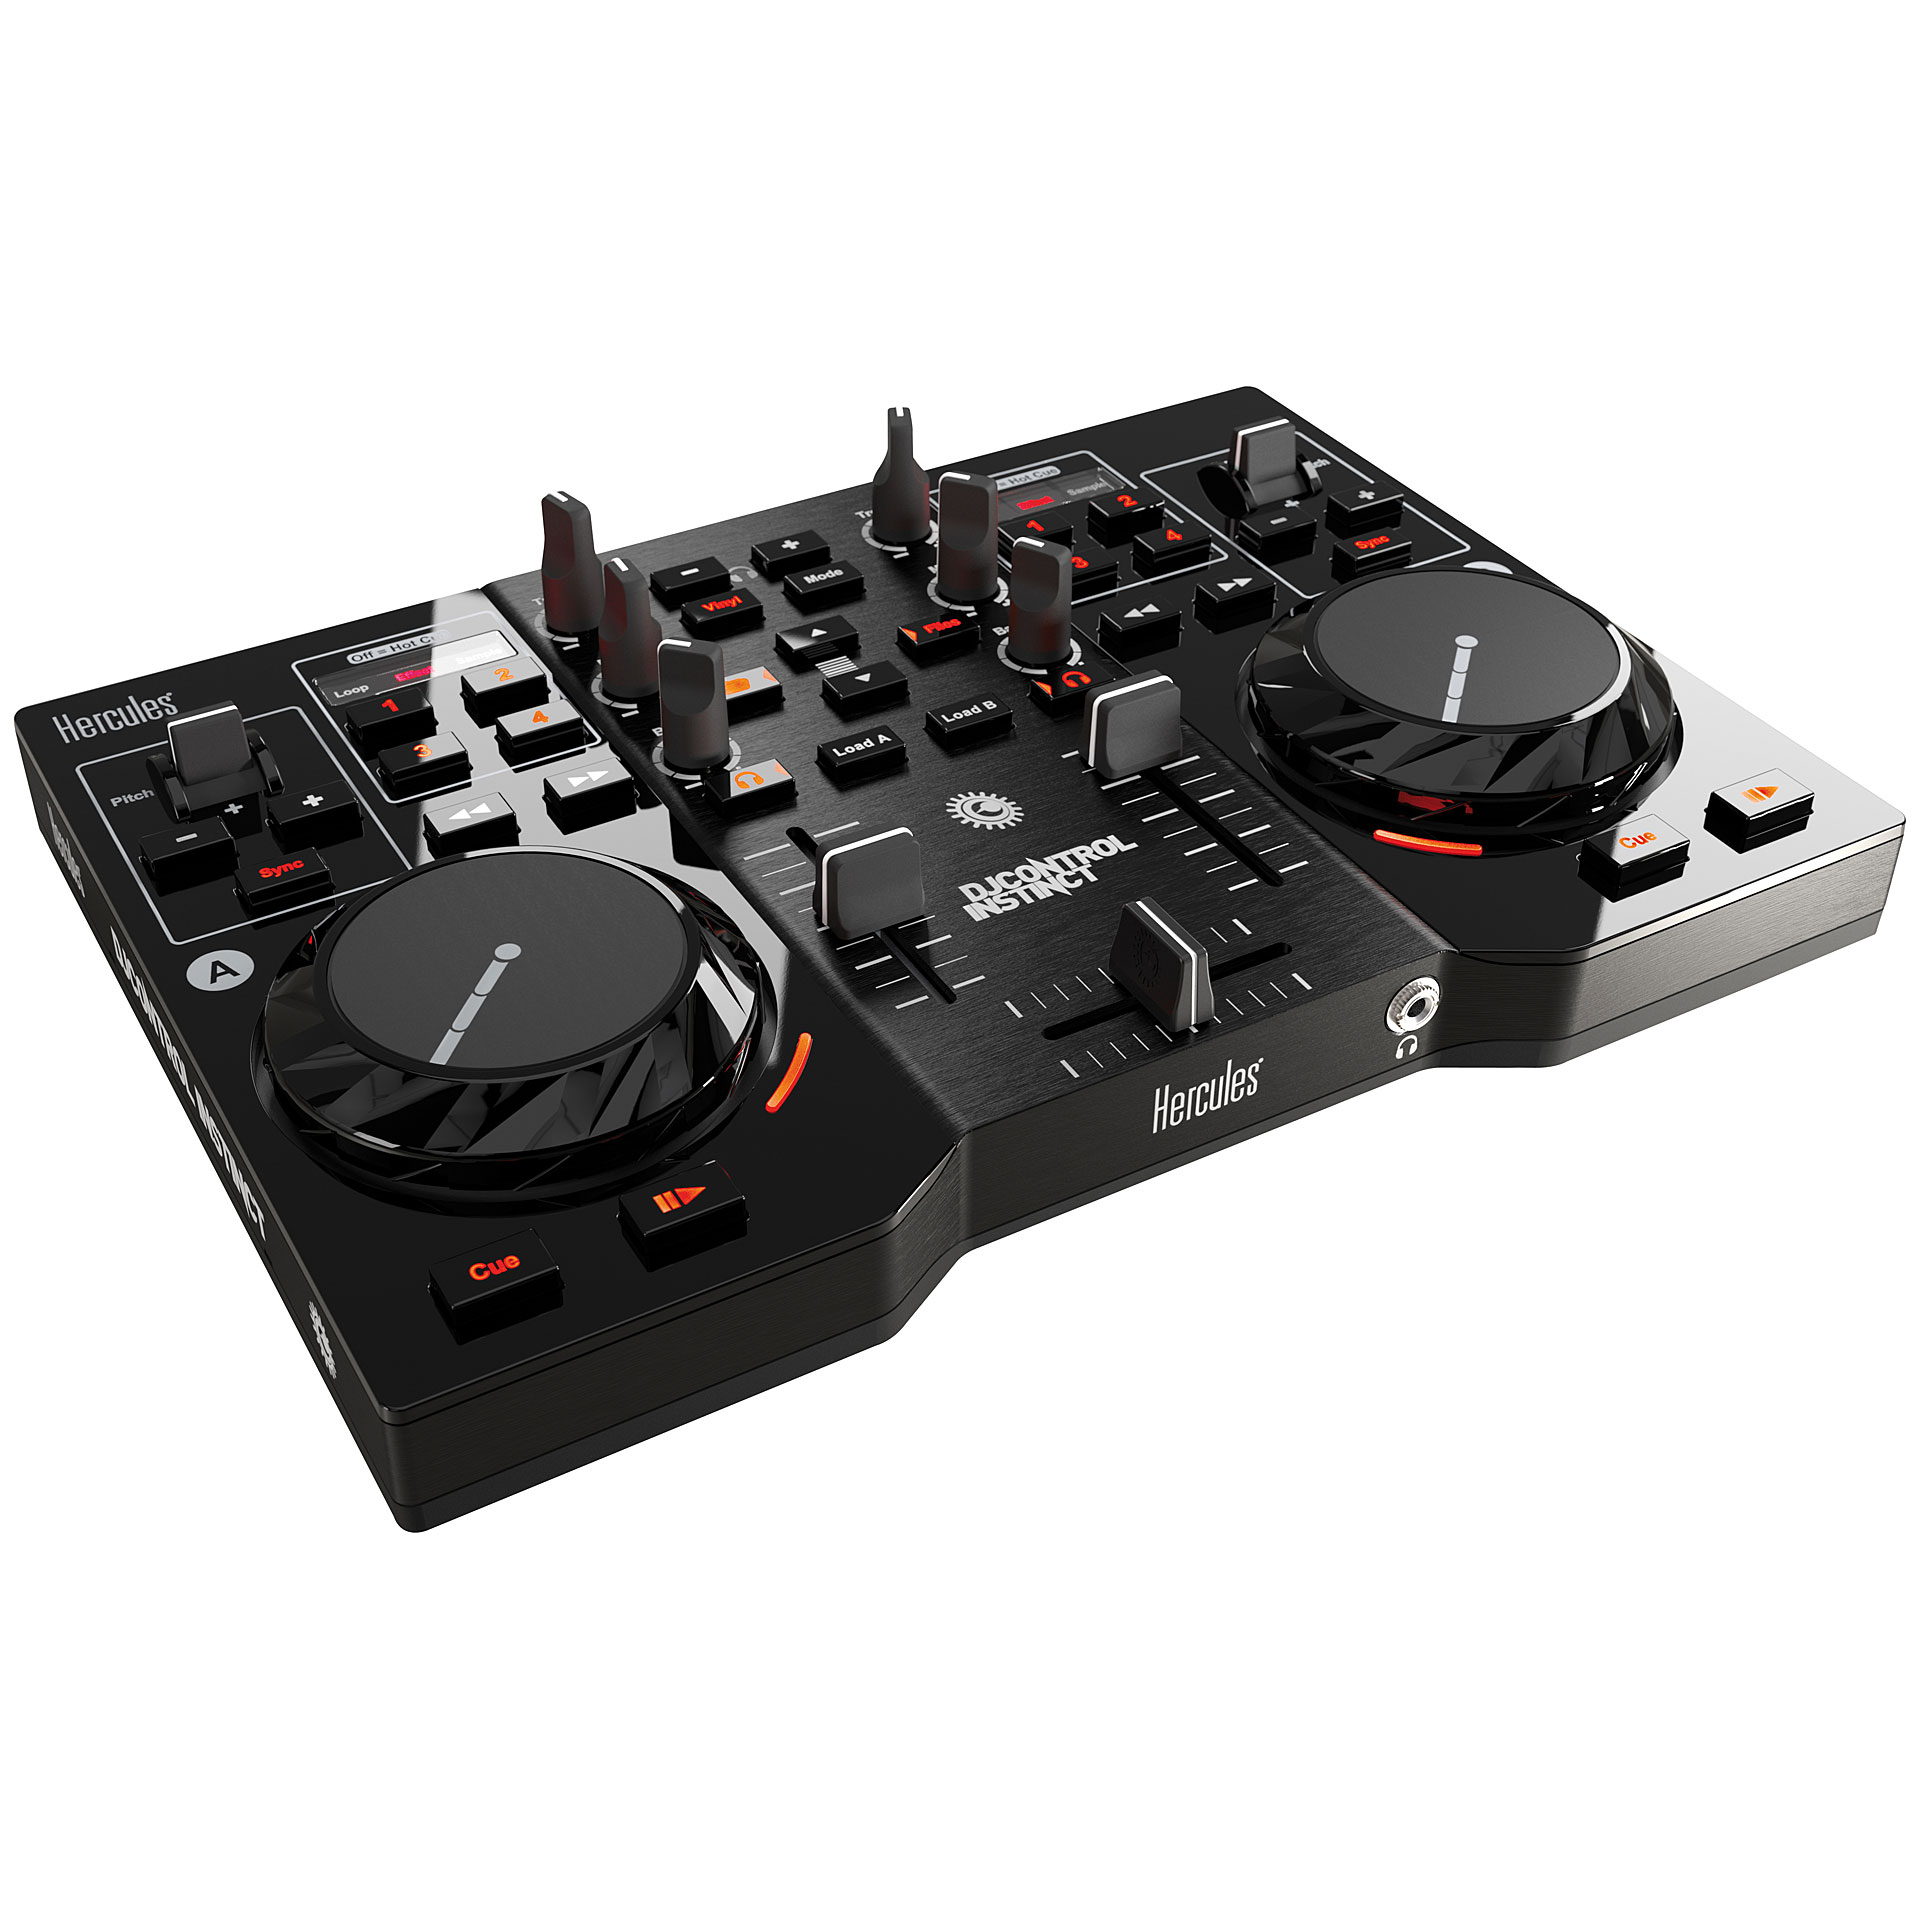 hercules dj control instinct dj controller. Black Bedroom Furniture Sets. Home Design Ideas